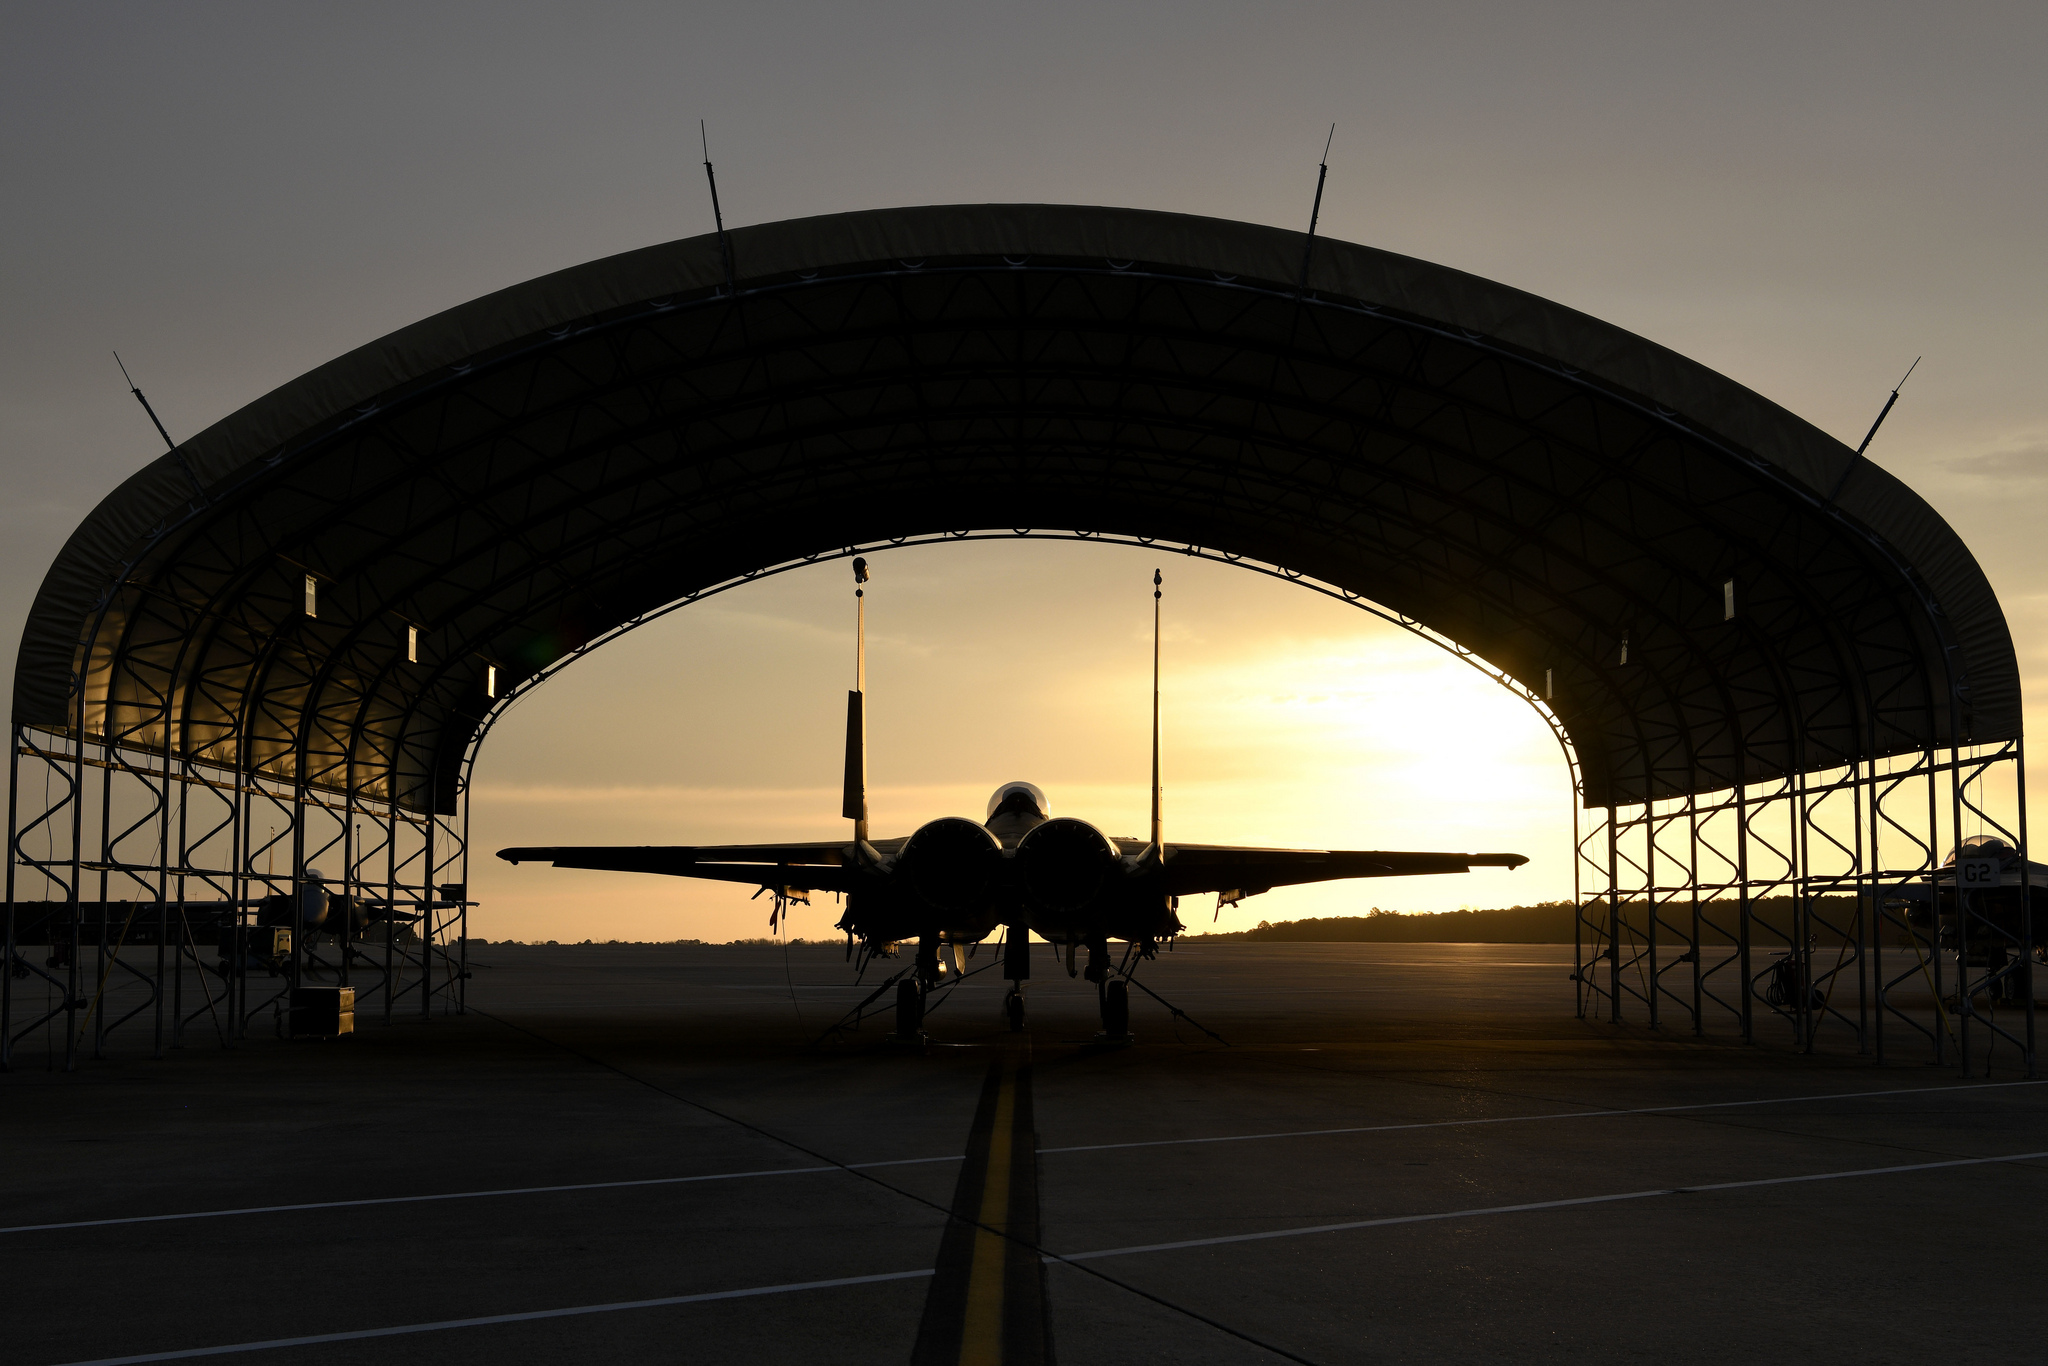 A U.S. Air Force F-15E Strike Eagle sits under a canopy on March 15, 2019, on the flightline at Seymour Johnson Air Force Base, N.C. (Senior Airman Victoria Boyton/Air Force)